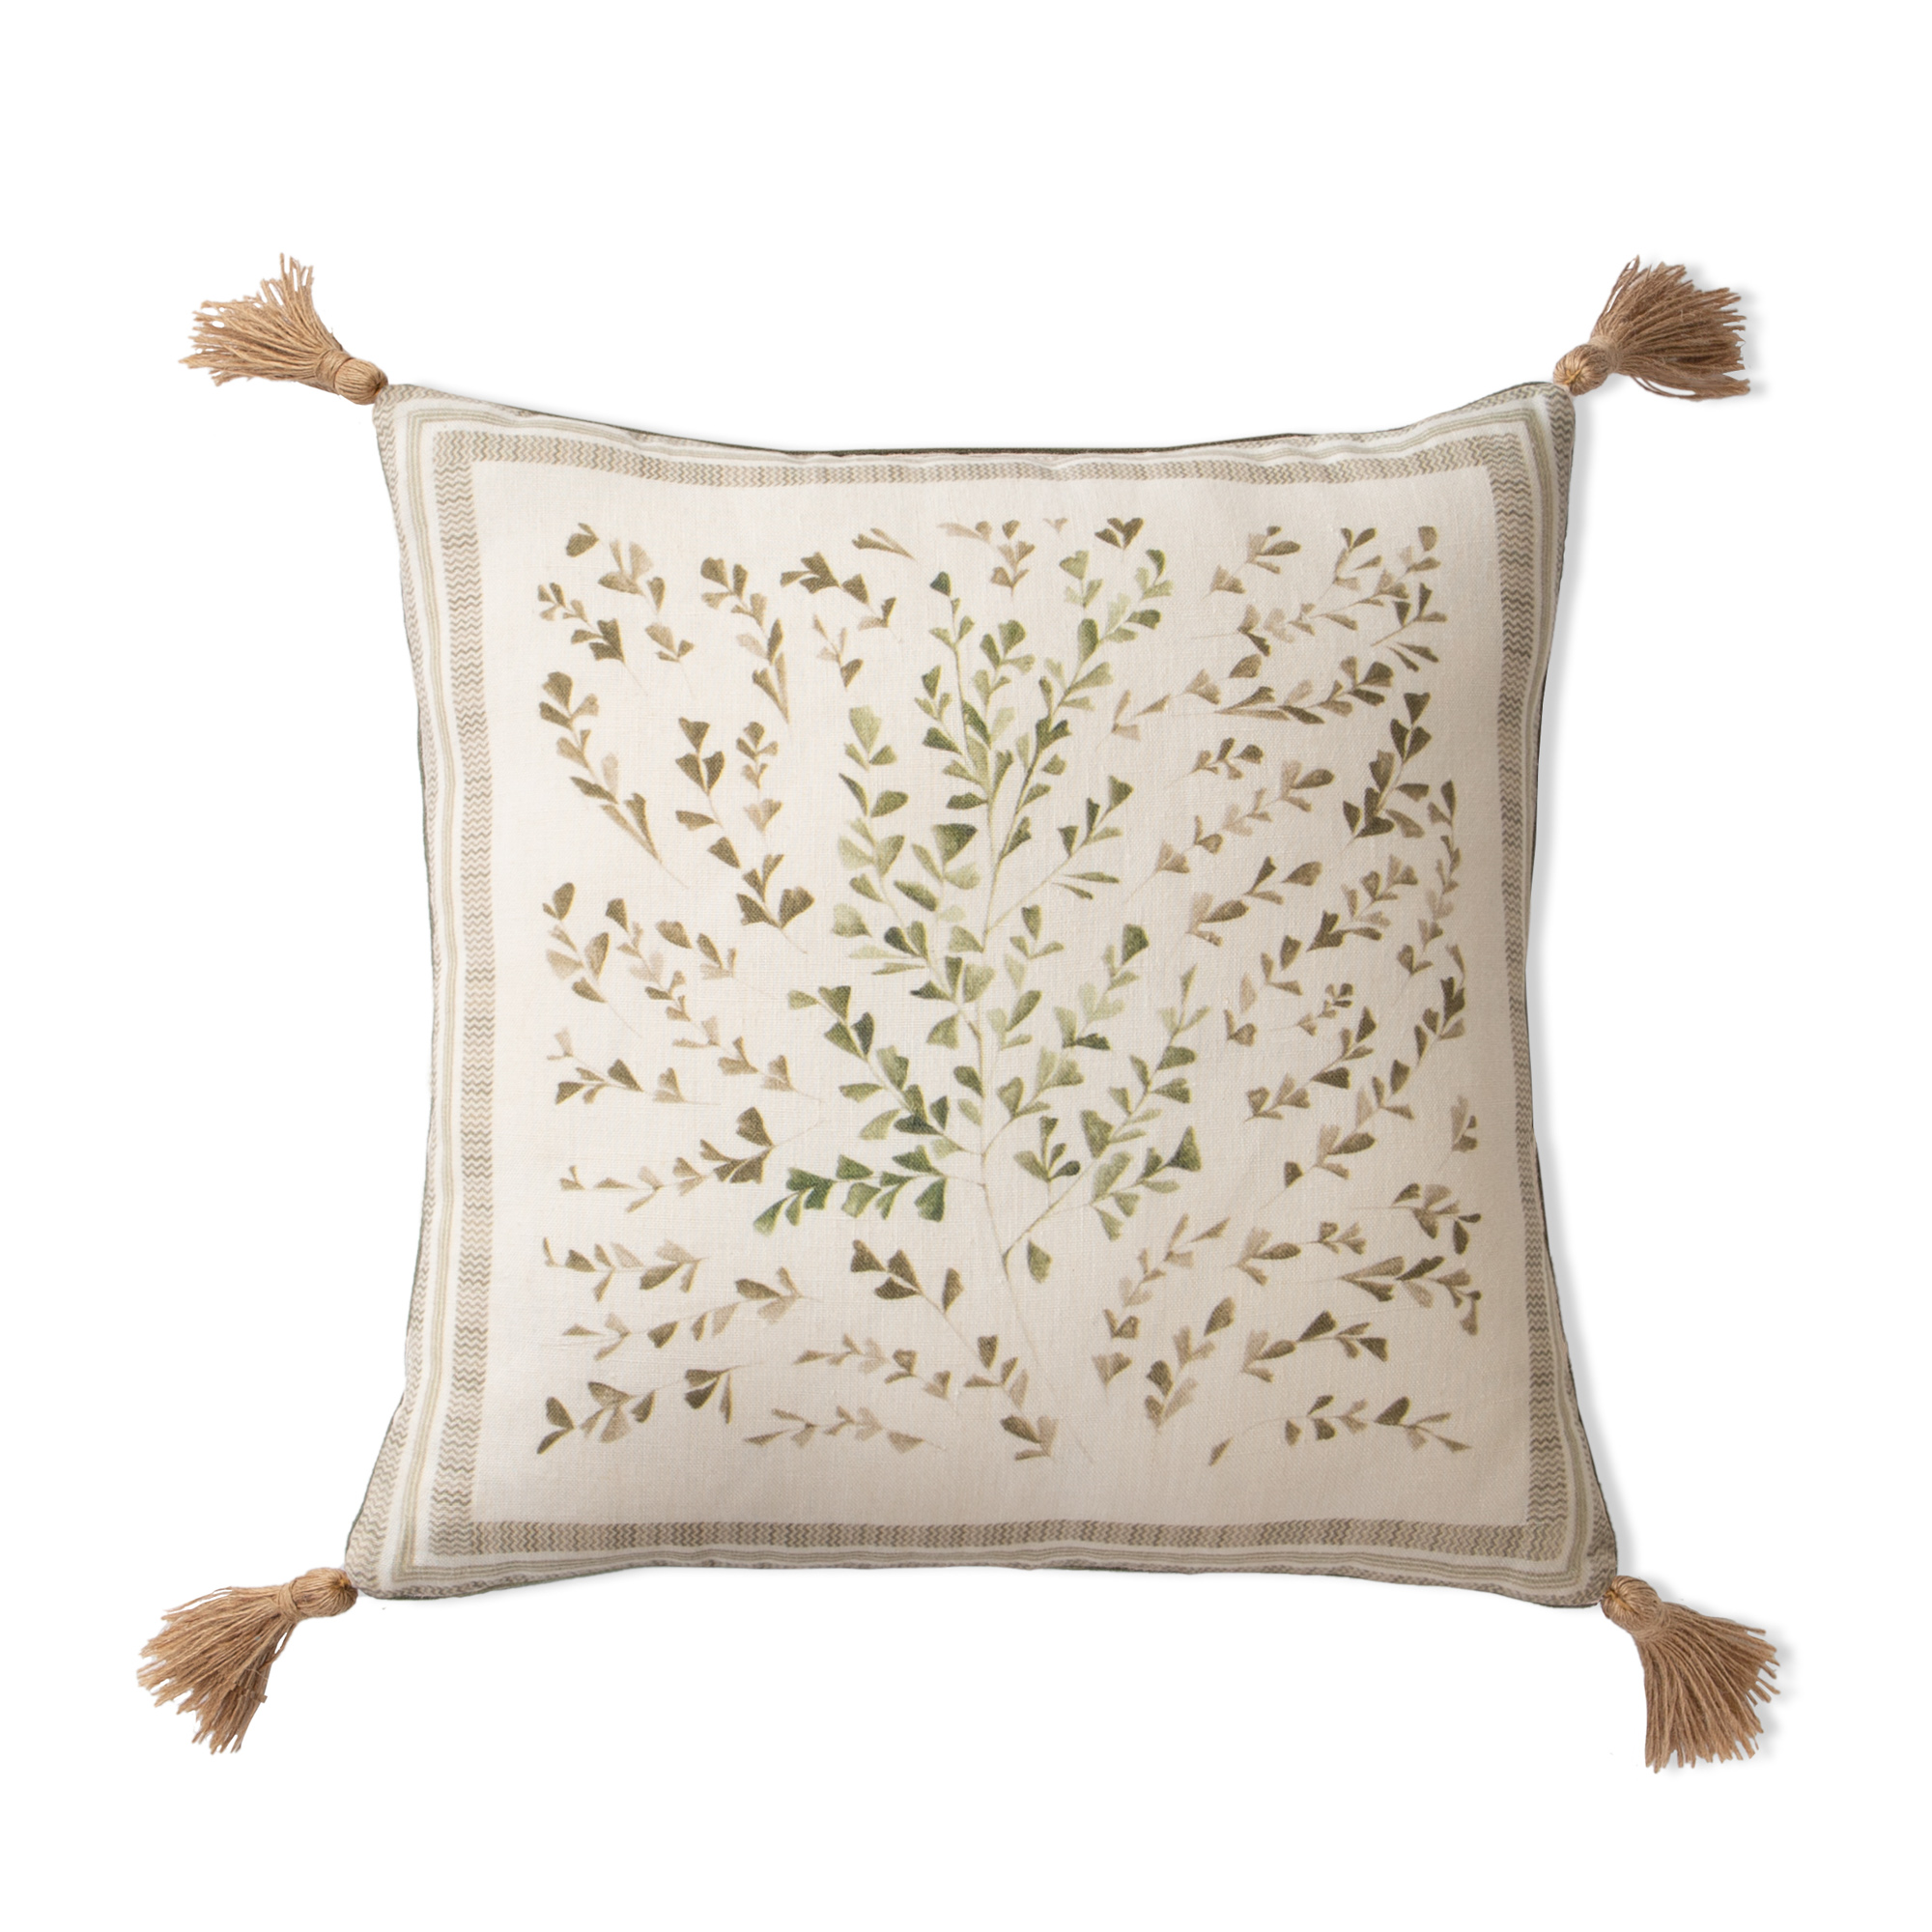 Autumn Bloom Cushion Cover